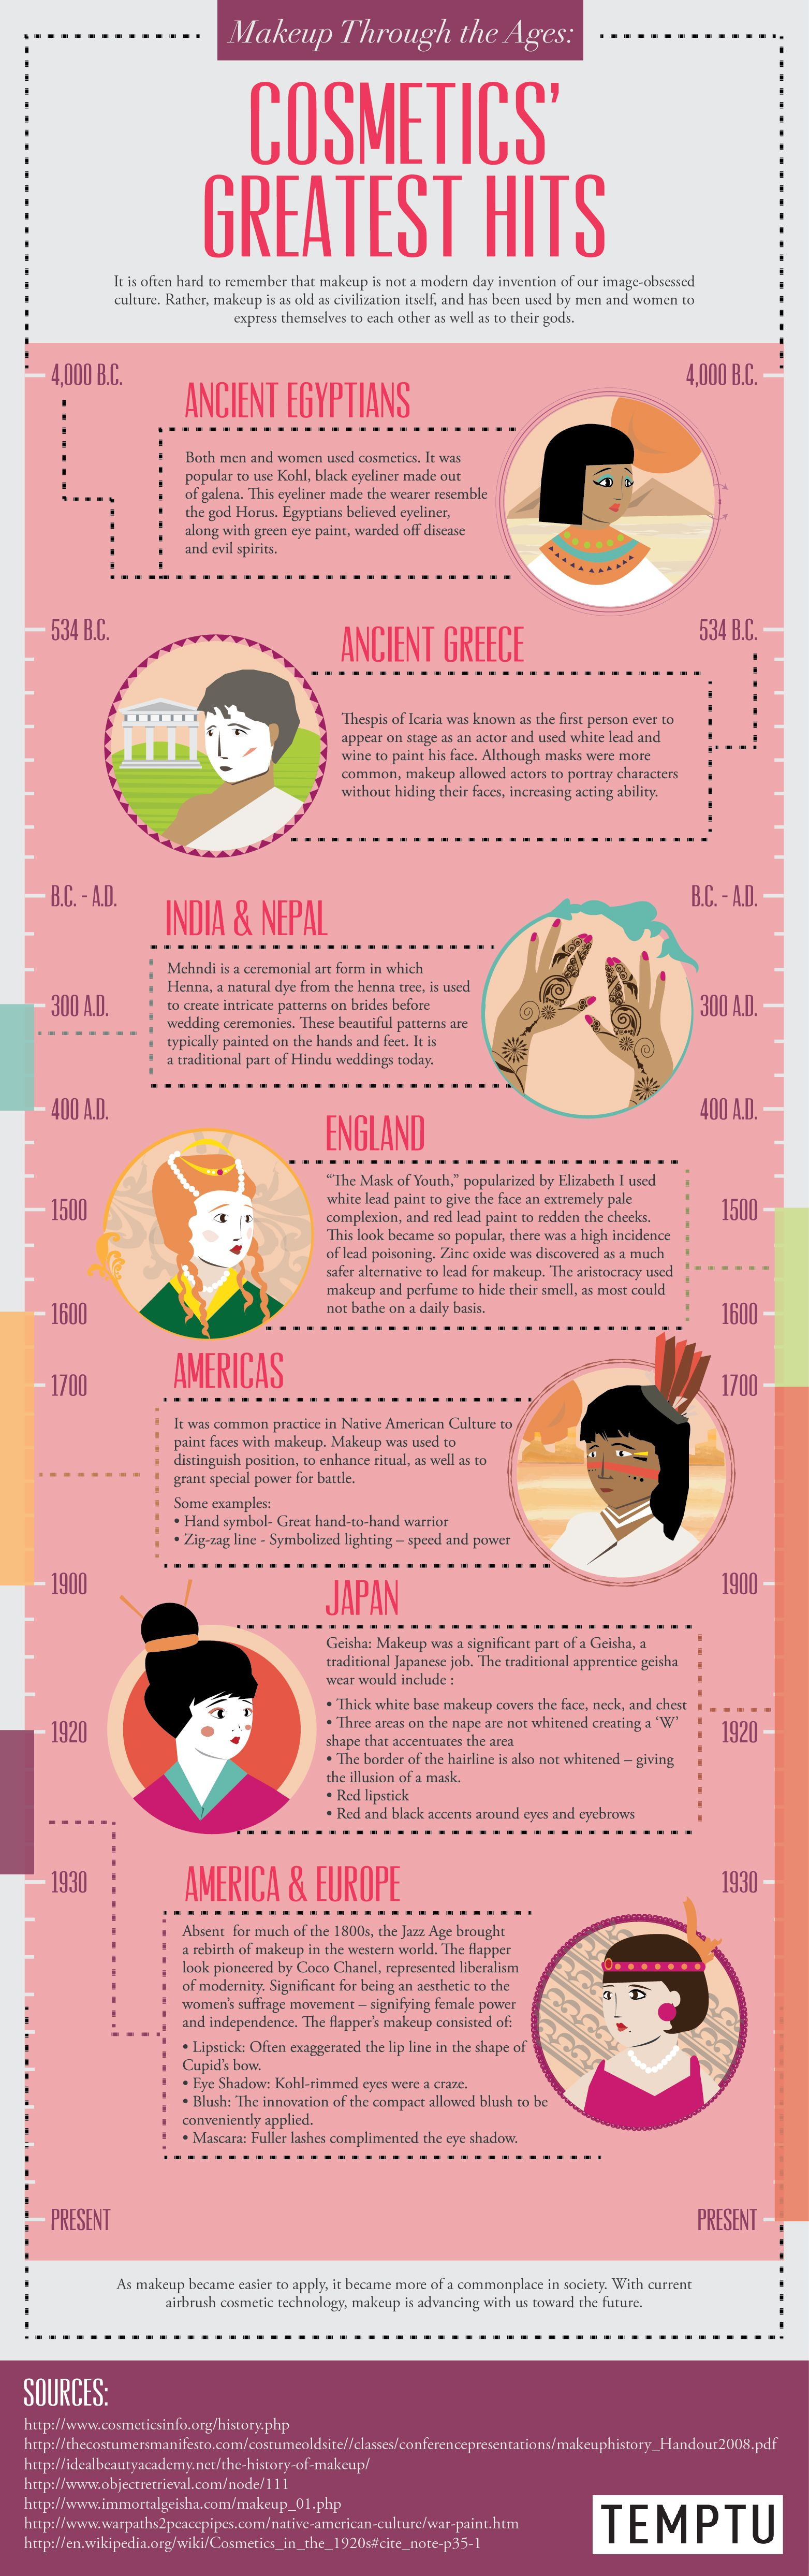 Cosmetics Greatest Hits Infographic kimmie1980ca